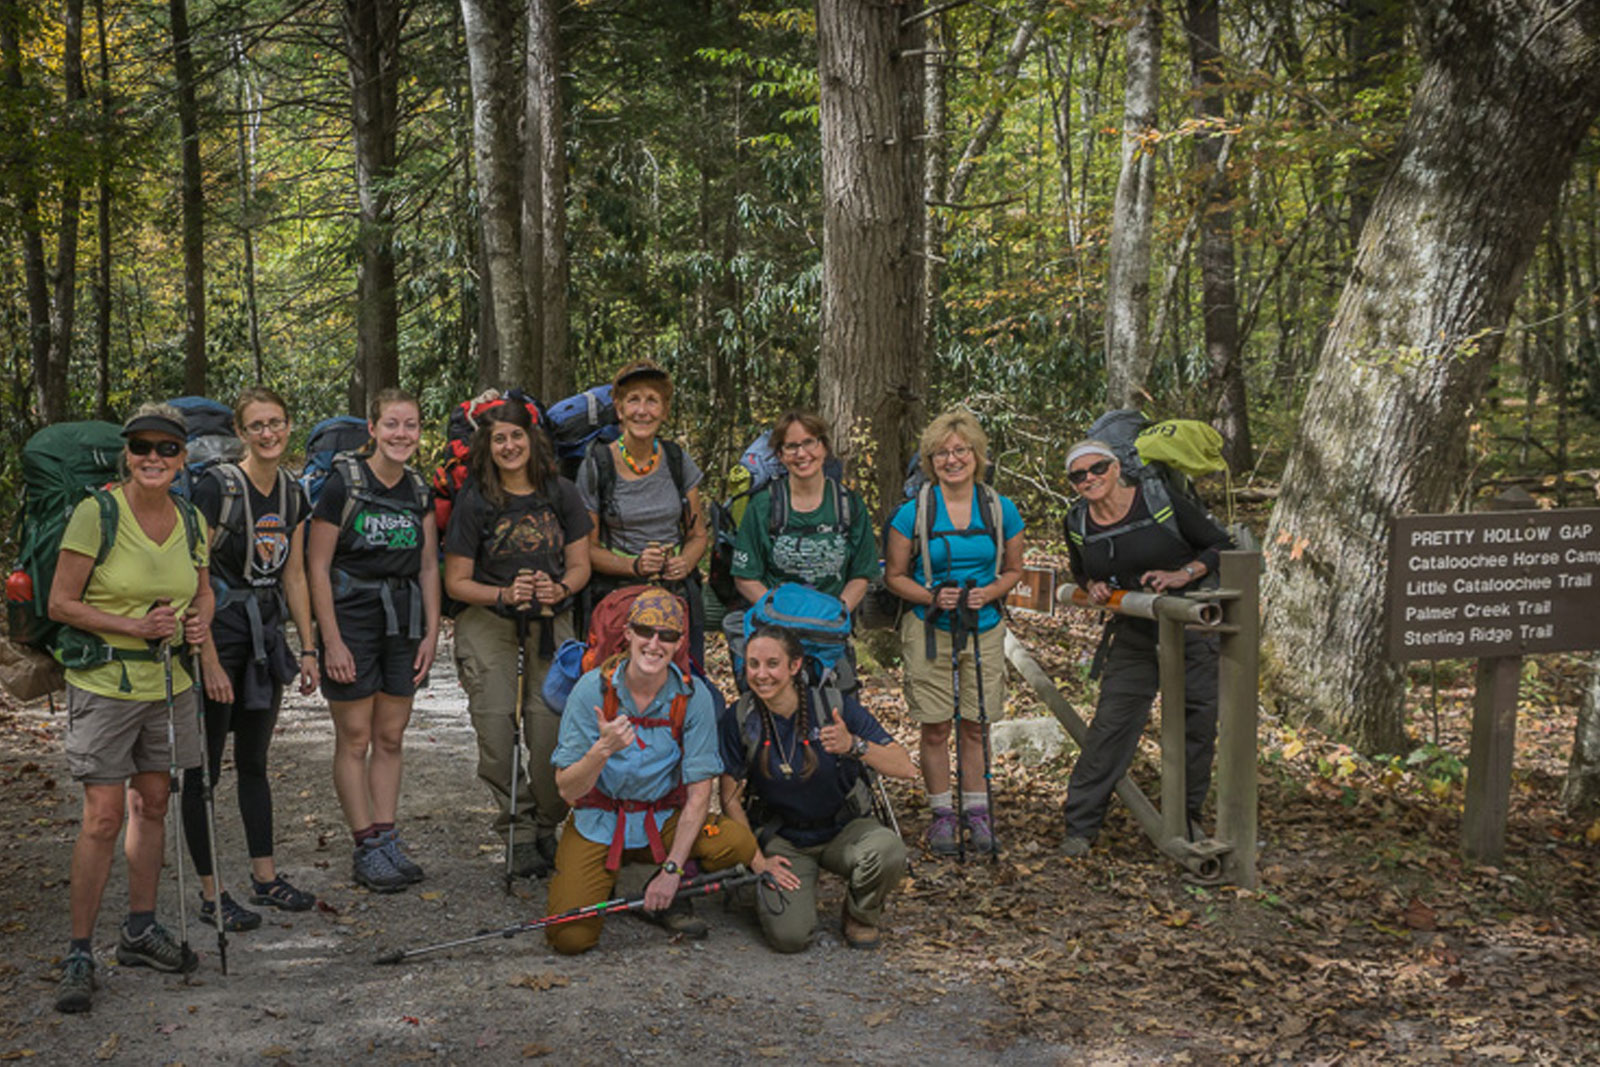 A group of female backpackers pause for a photo at a trailhead